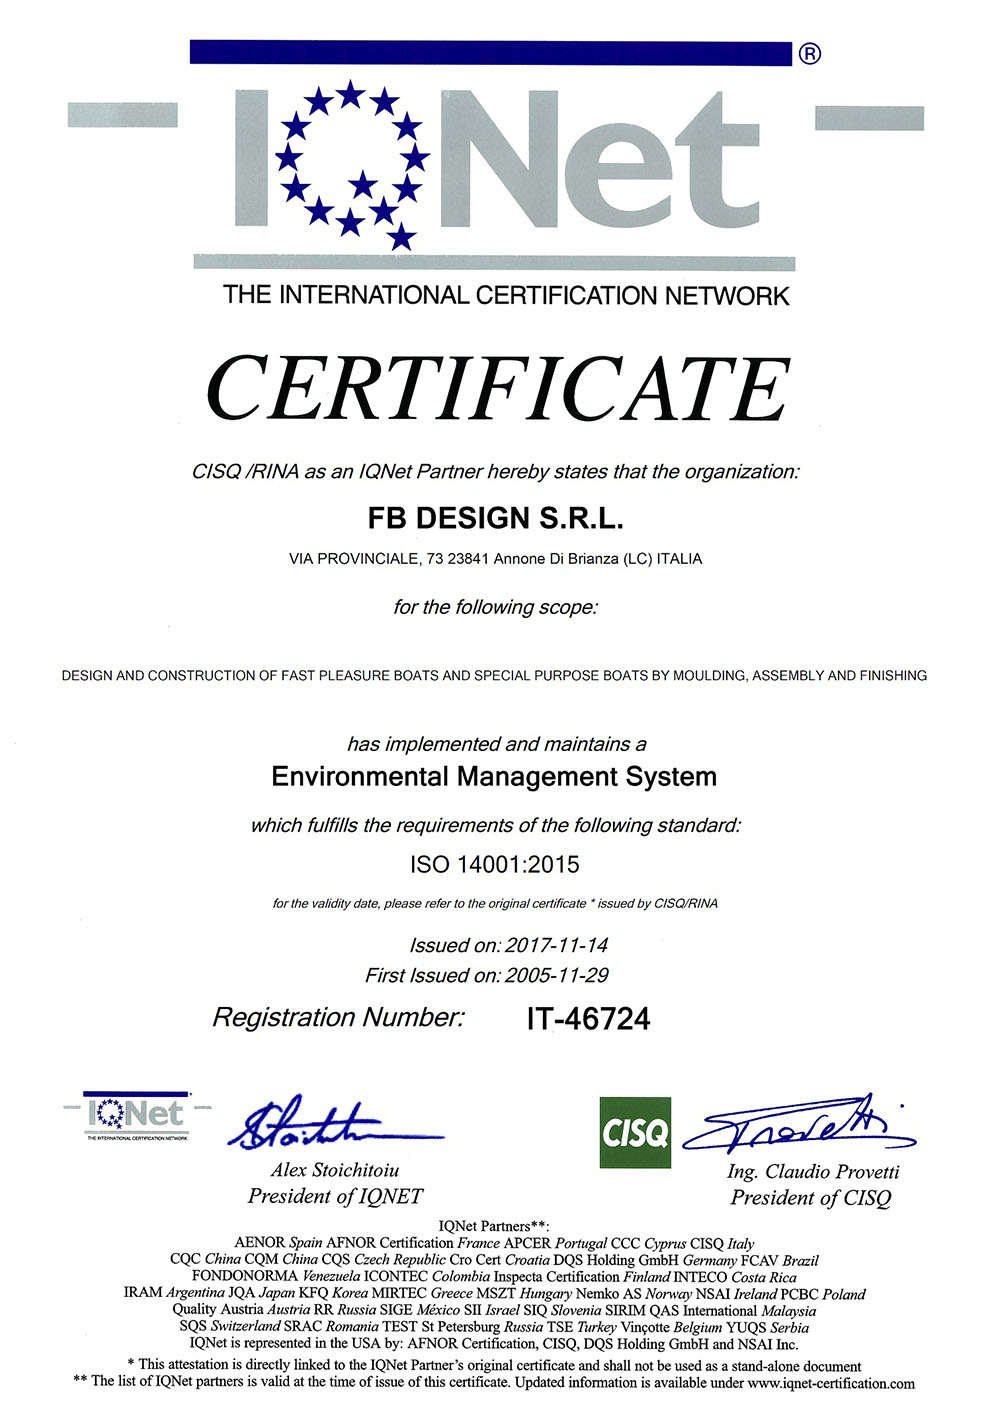 ISO 14001 IQNET small